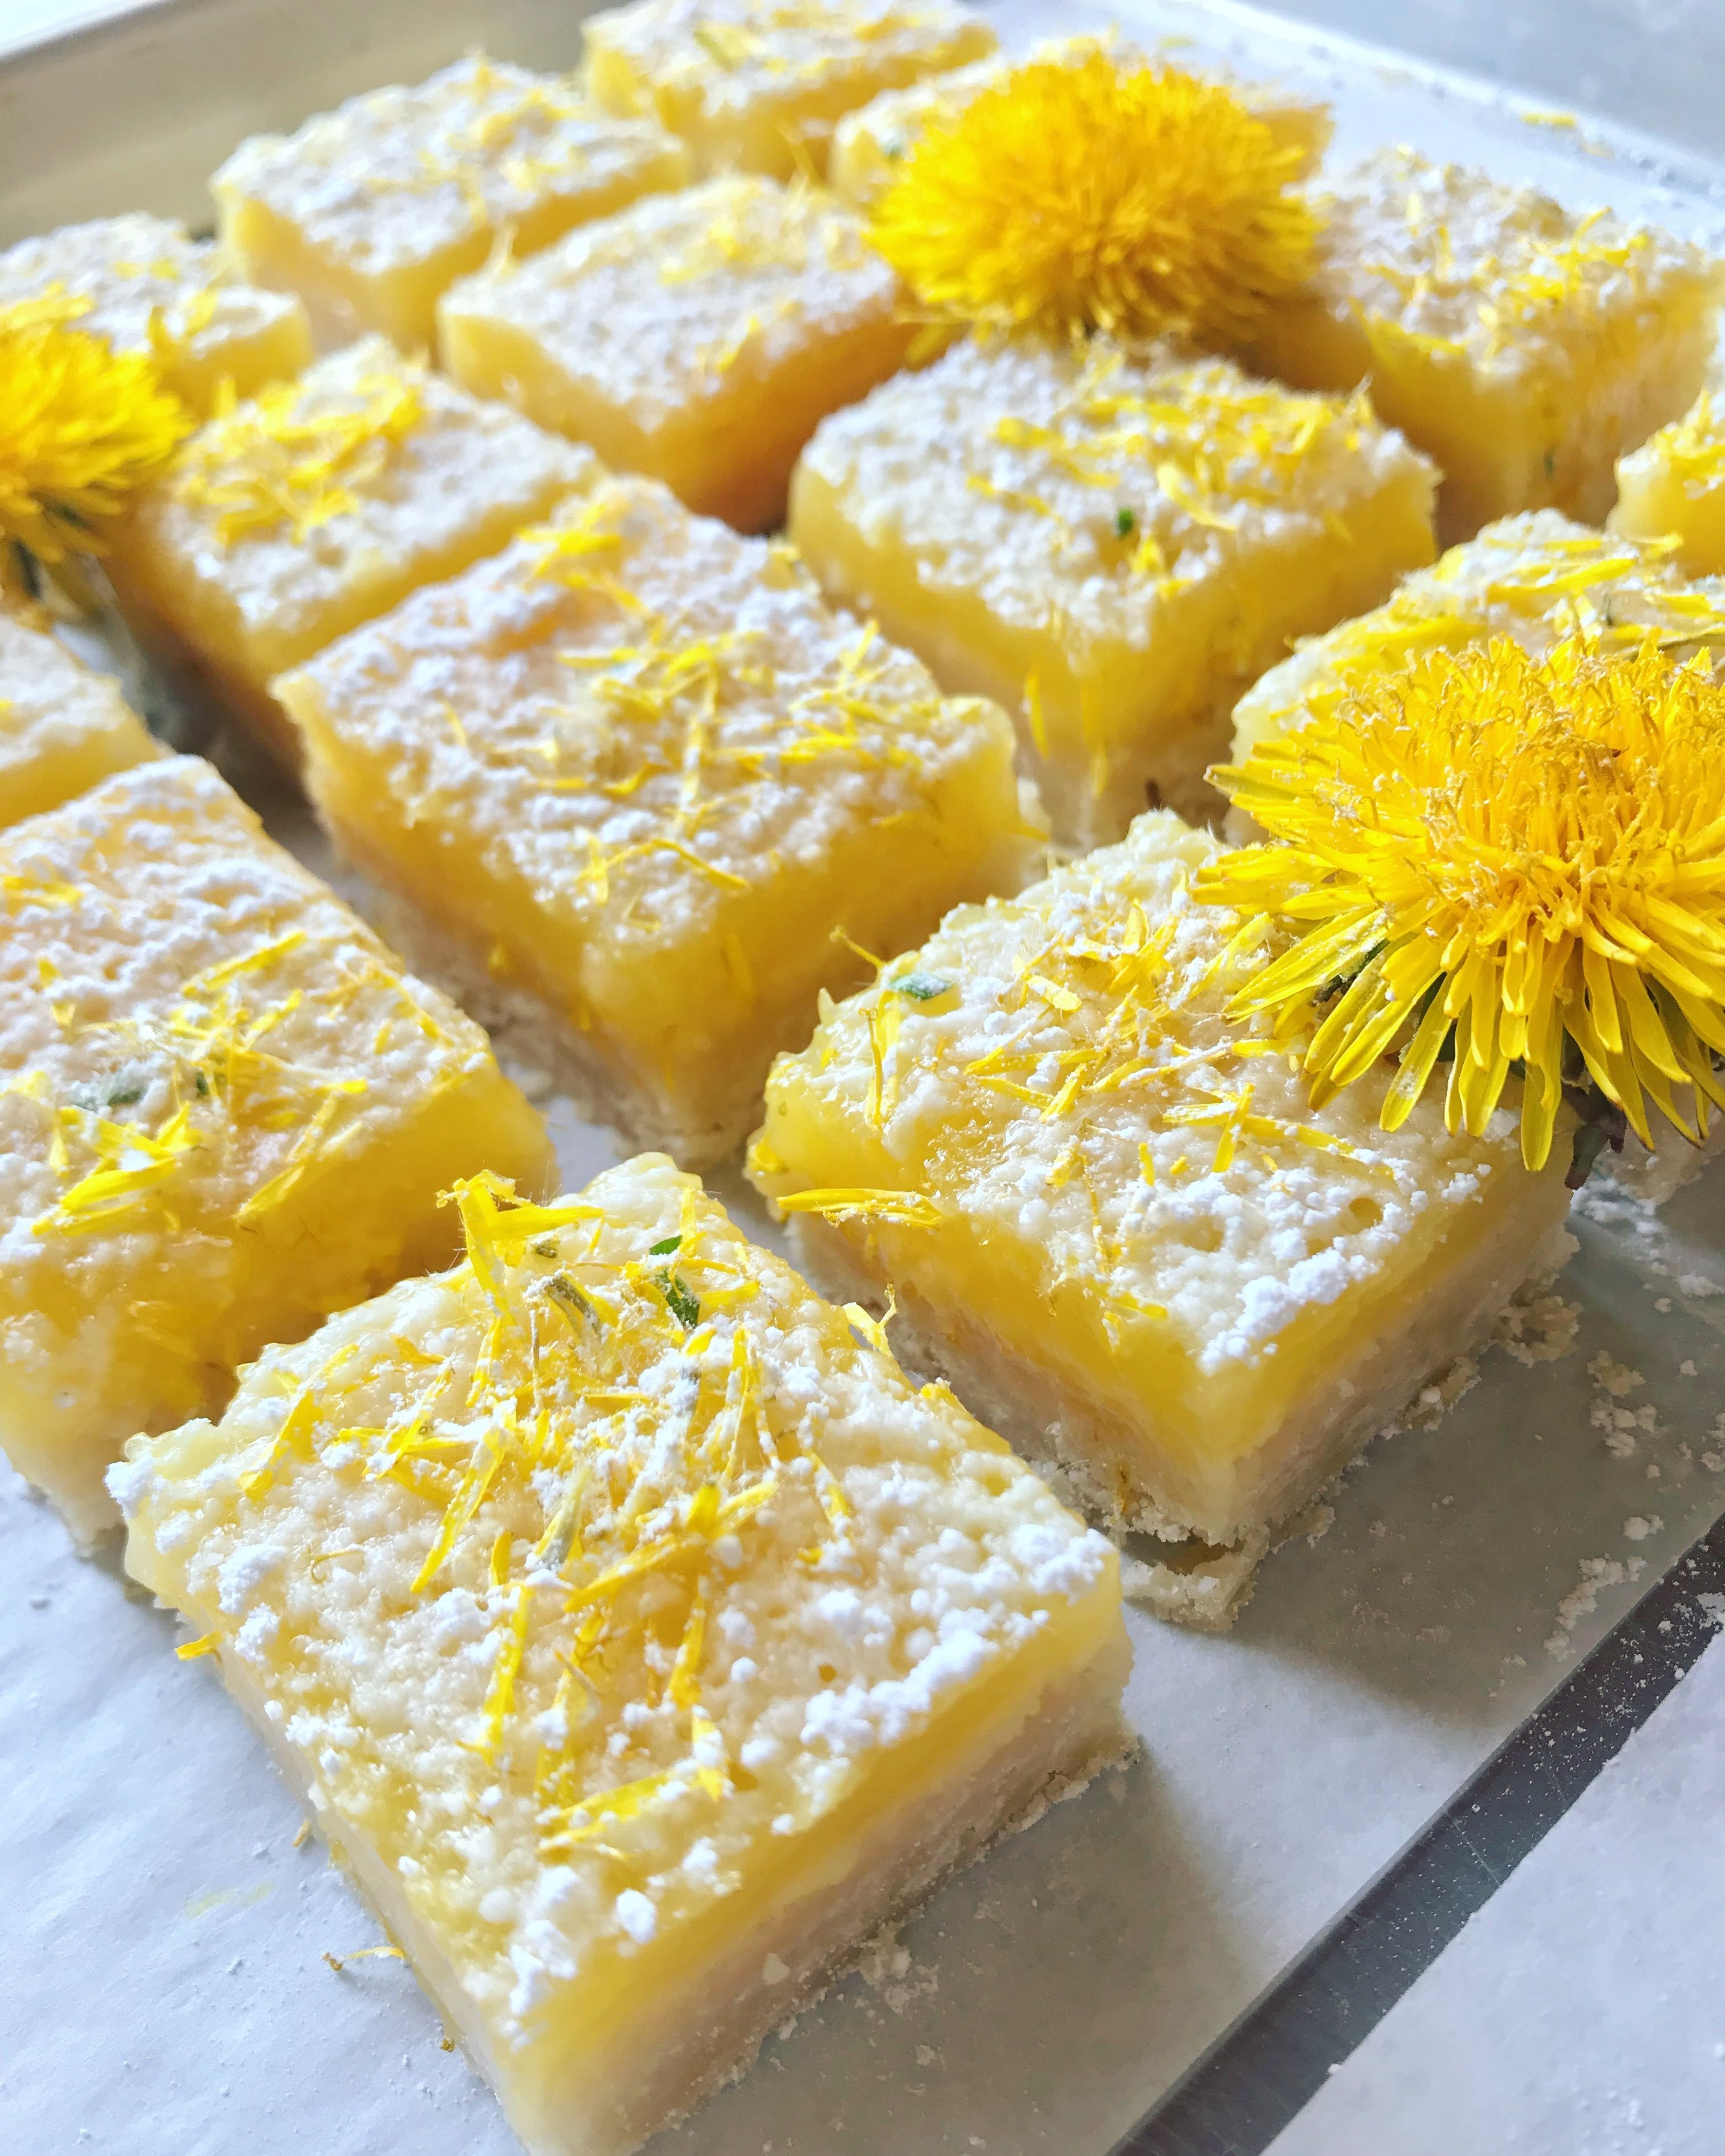 Dandelion Lemon Bars Tart And Sweet With A Touch Of The Spring Wilds Recipe Dandelion Recipes Foraged Food Foraging Recipes